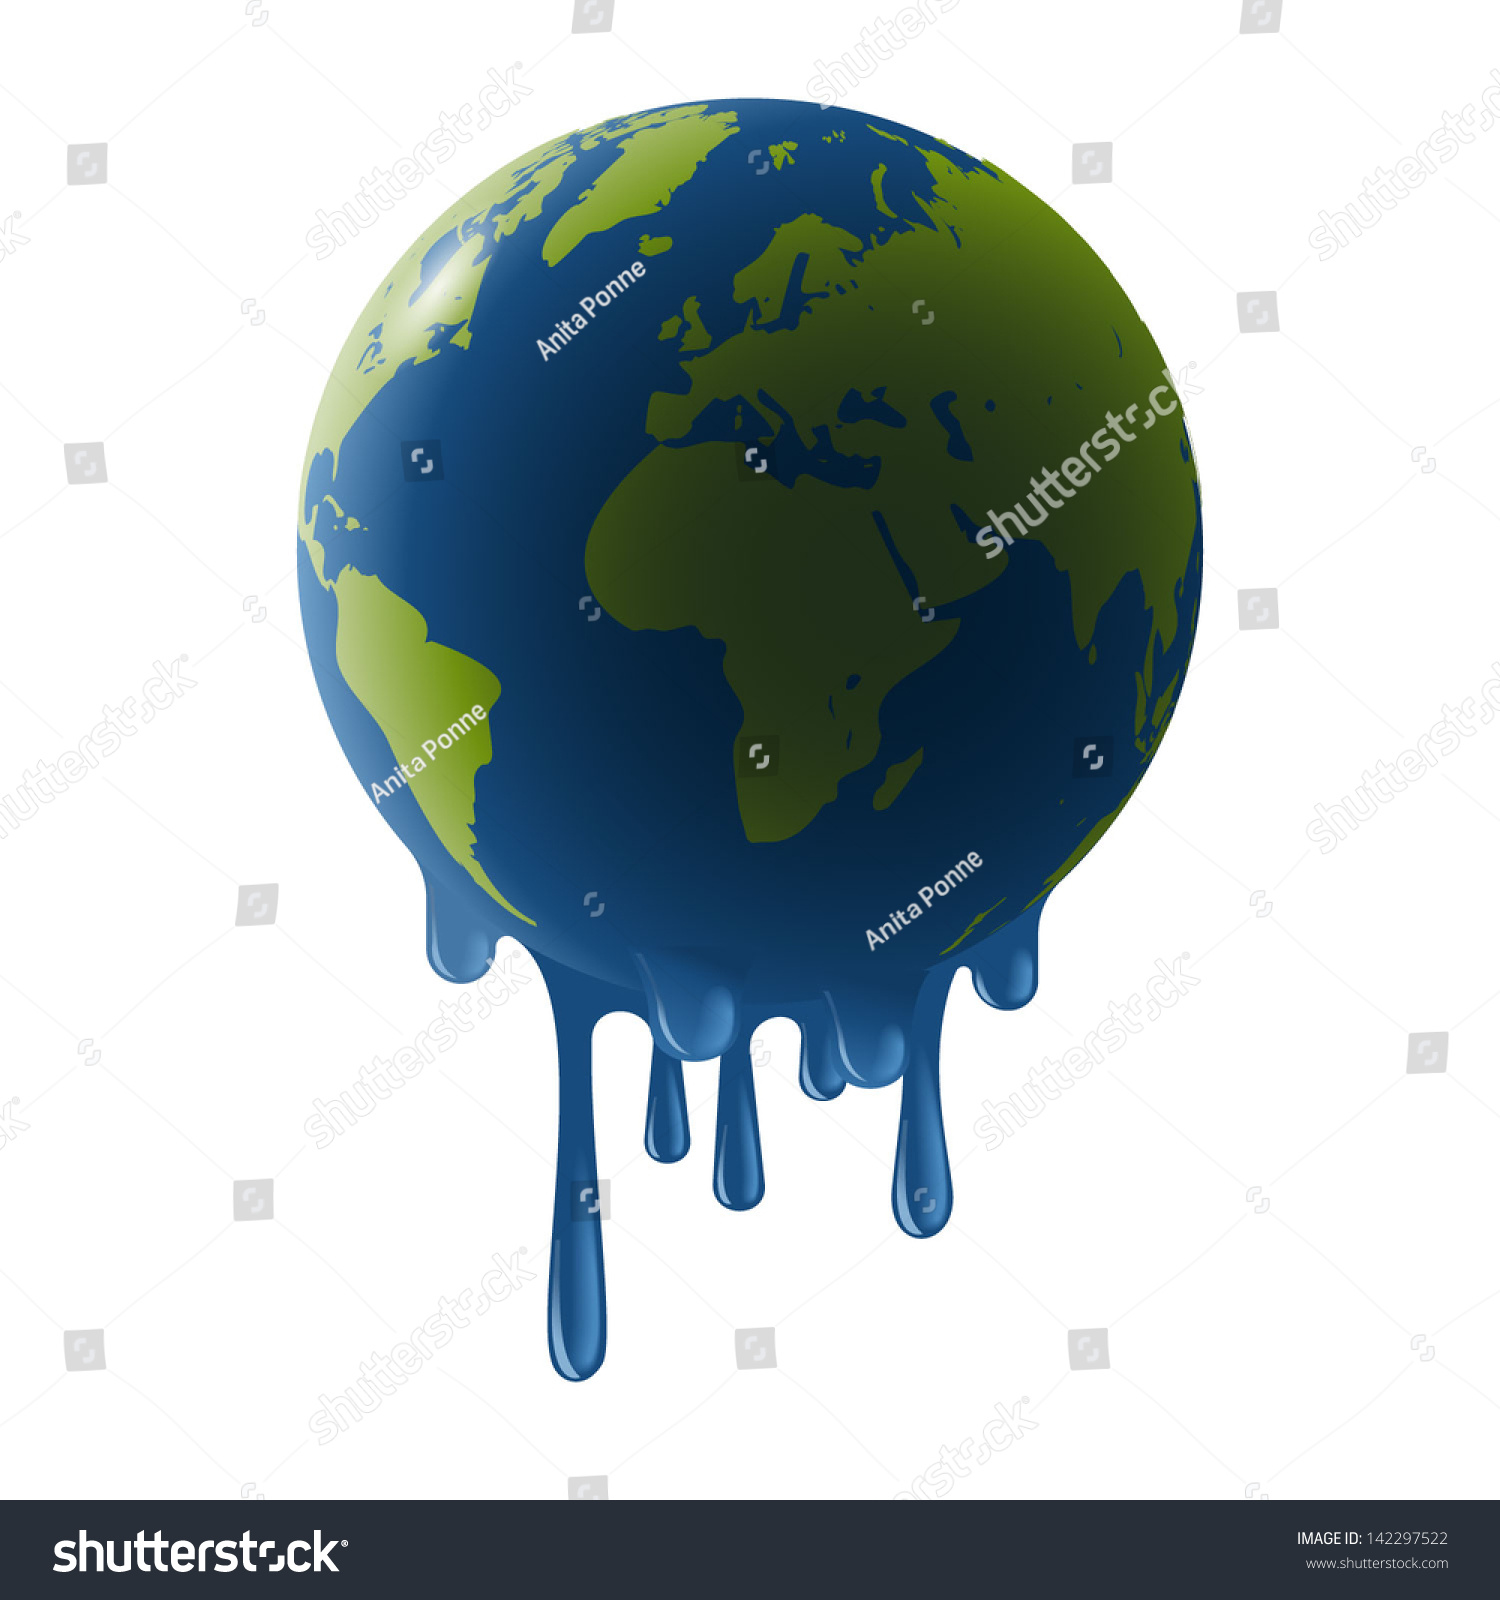 concept paper on global warming Vital signs of the planet: global climate change and global warming  of  papers rejecting agw [anthropogenic, or human-caused, global warming] is a.